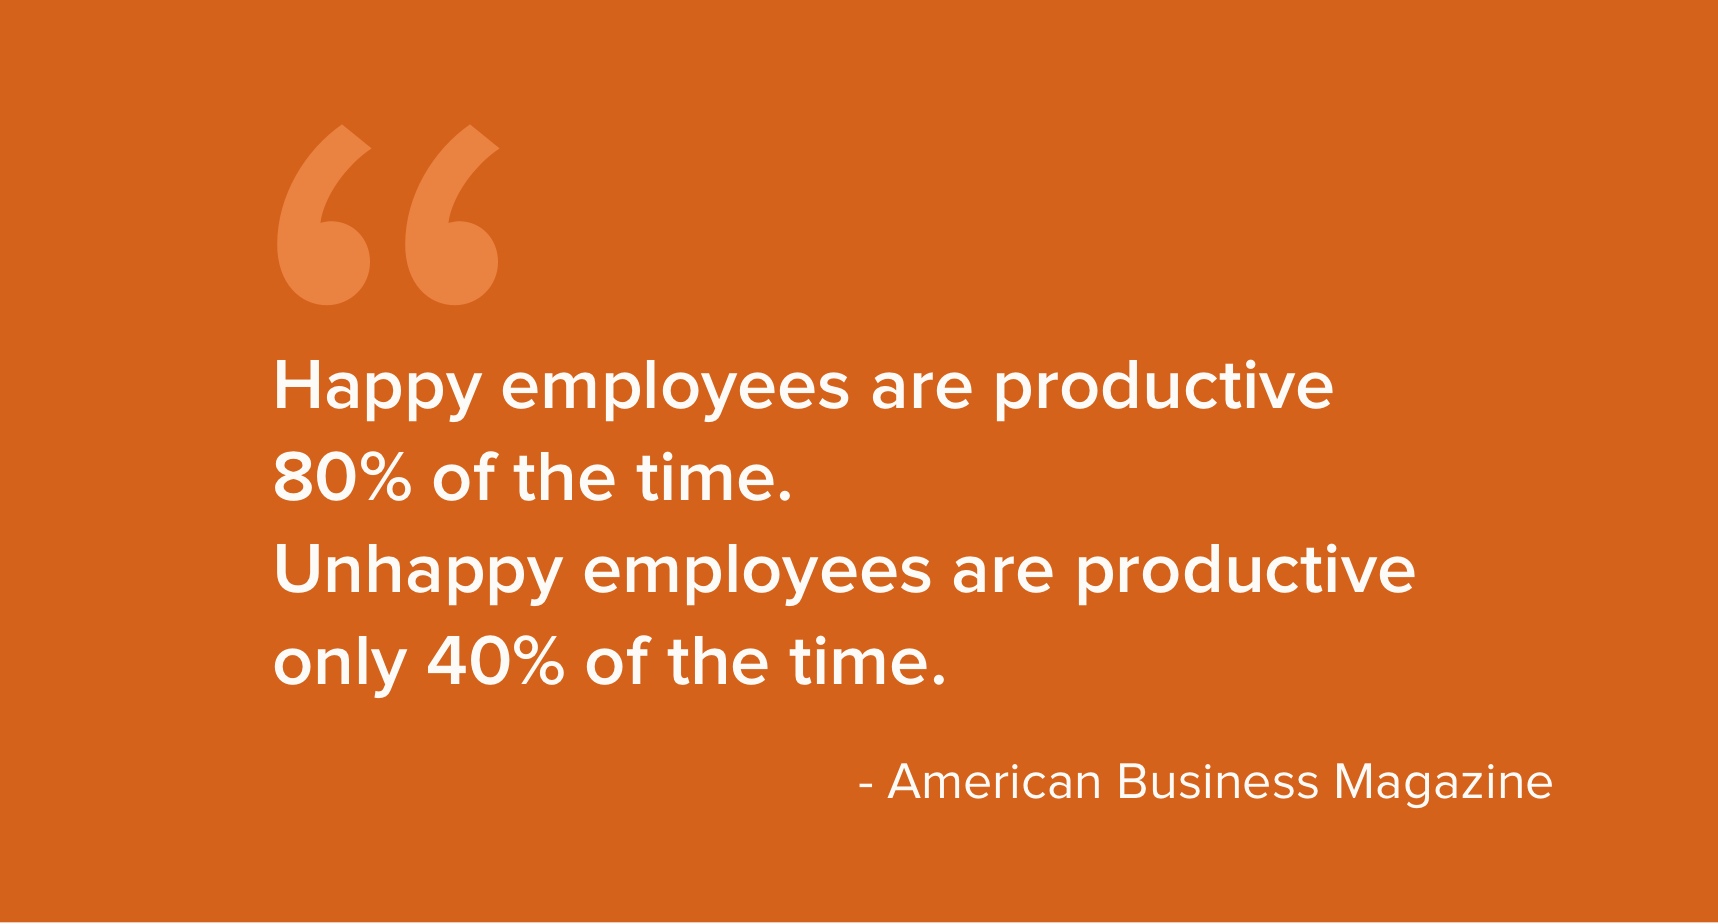 Happy employees are more productive in their work that their unhappy counterparts.